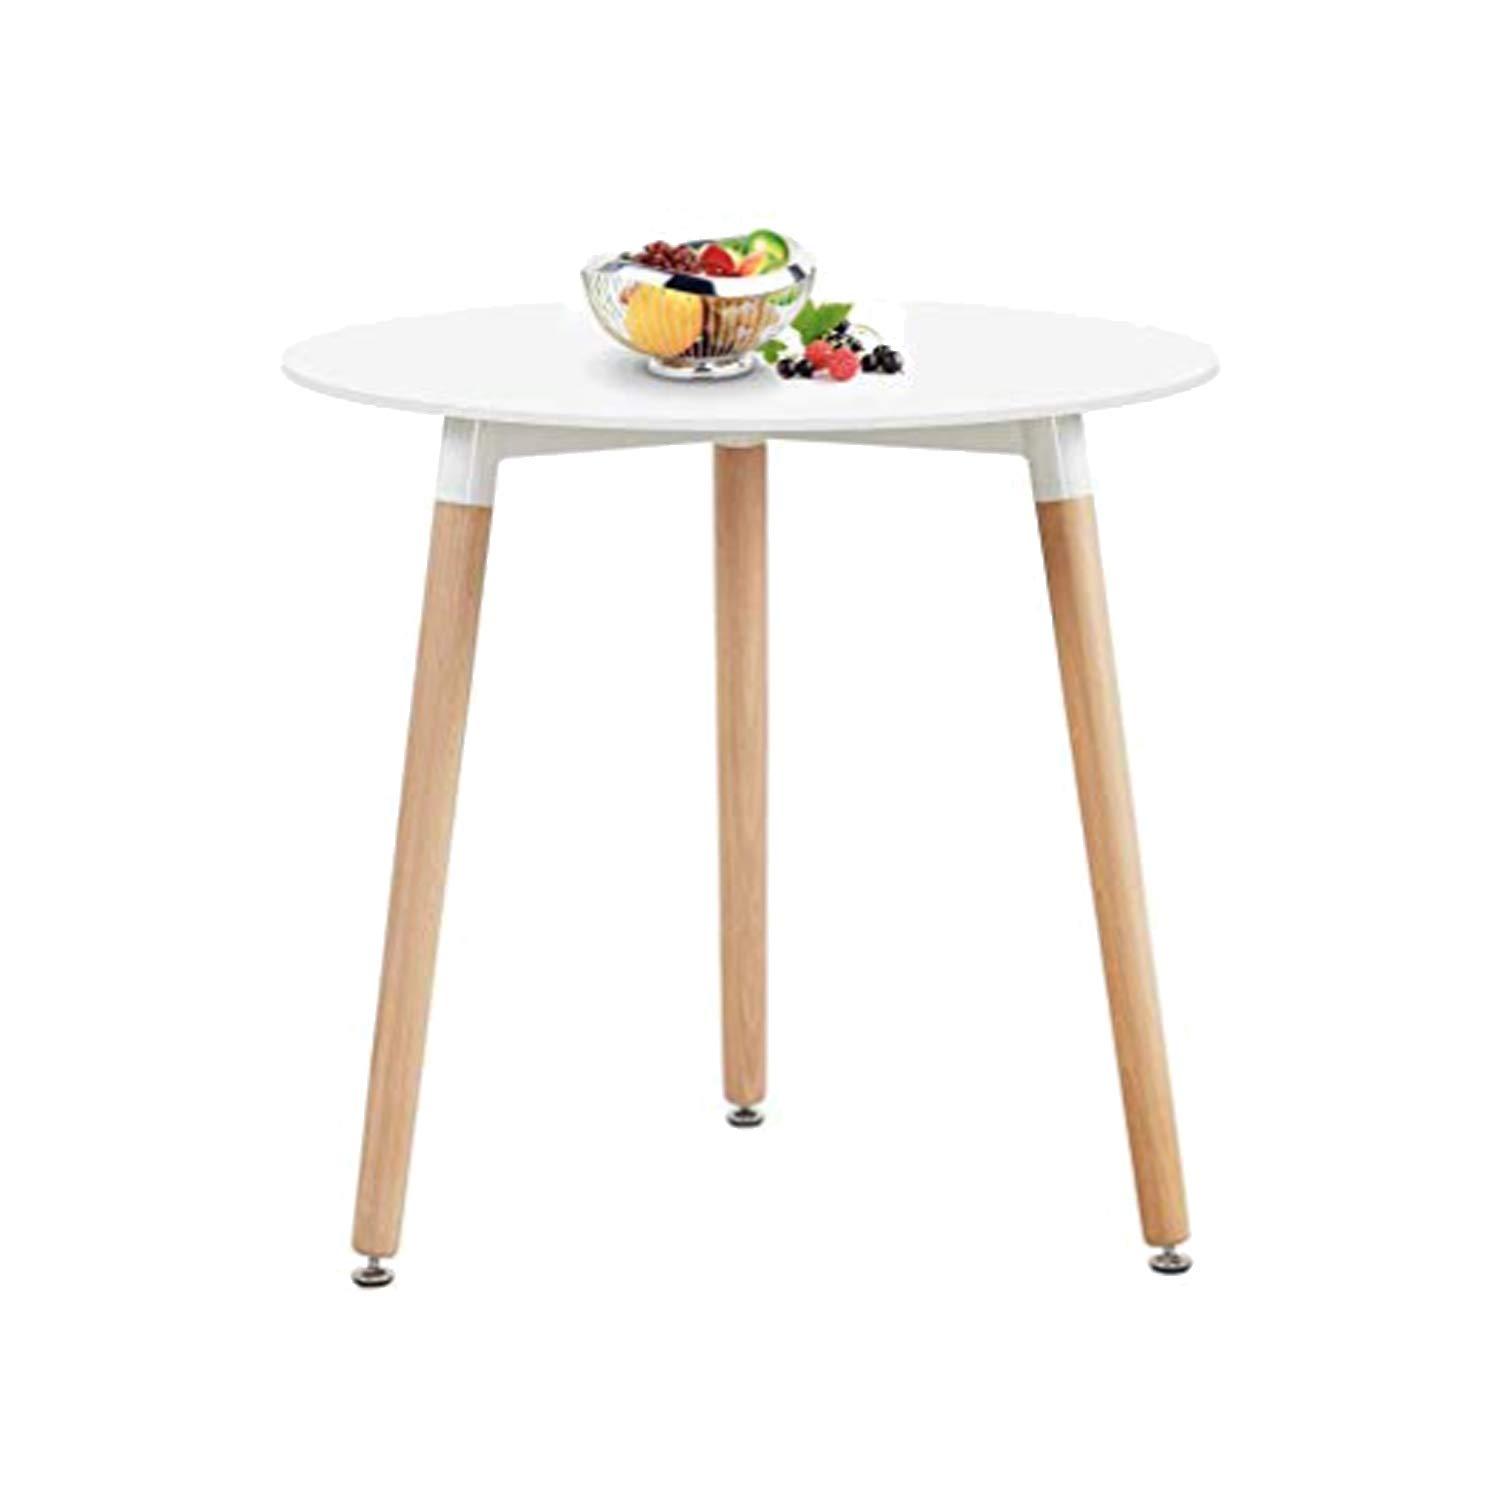 Nicemoods Round Table Kitchen Dining Table, Modern Style Round Leisure Coffee Table,White Dining Room Table for Kicthen Living Room,White by Nicemoods